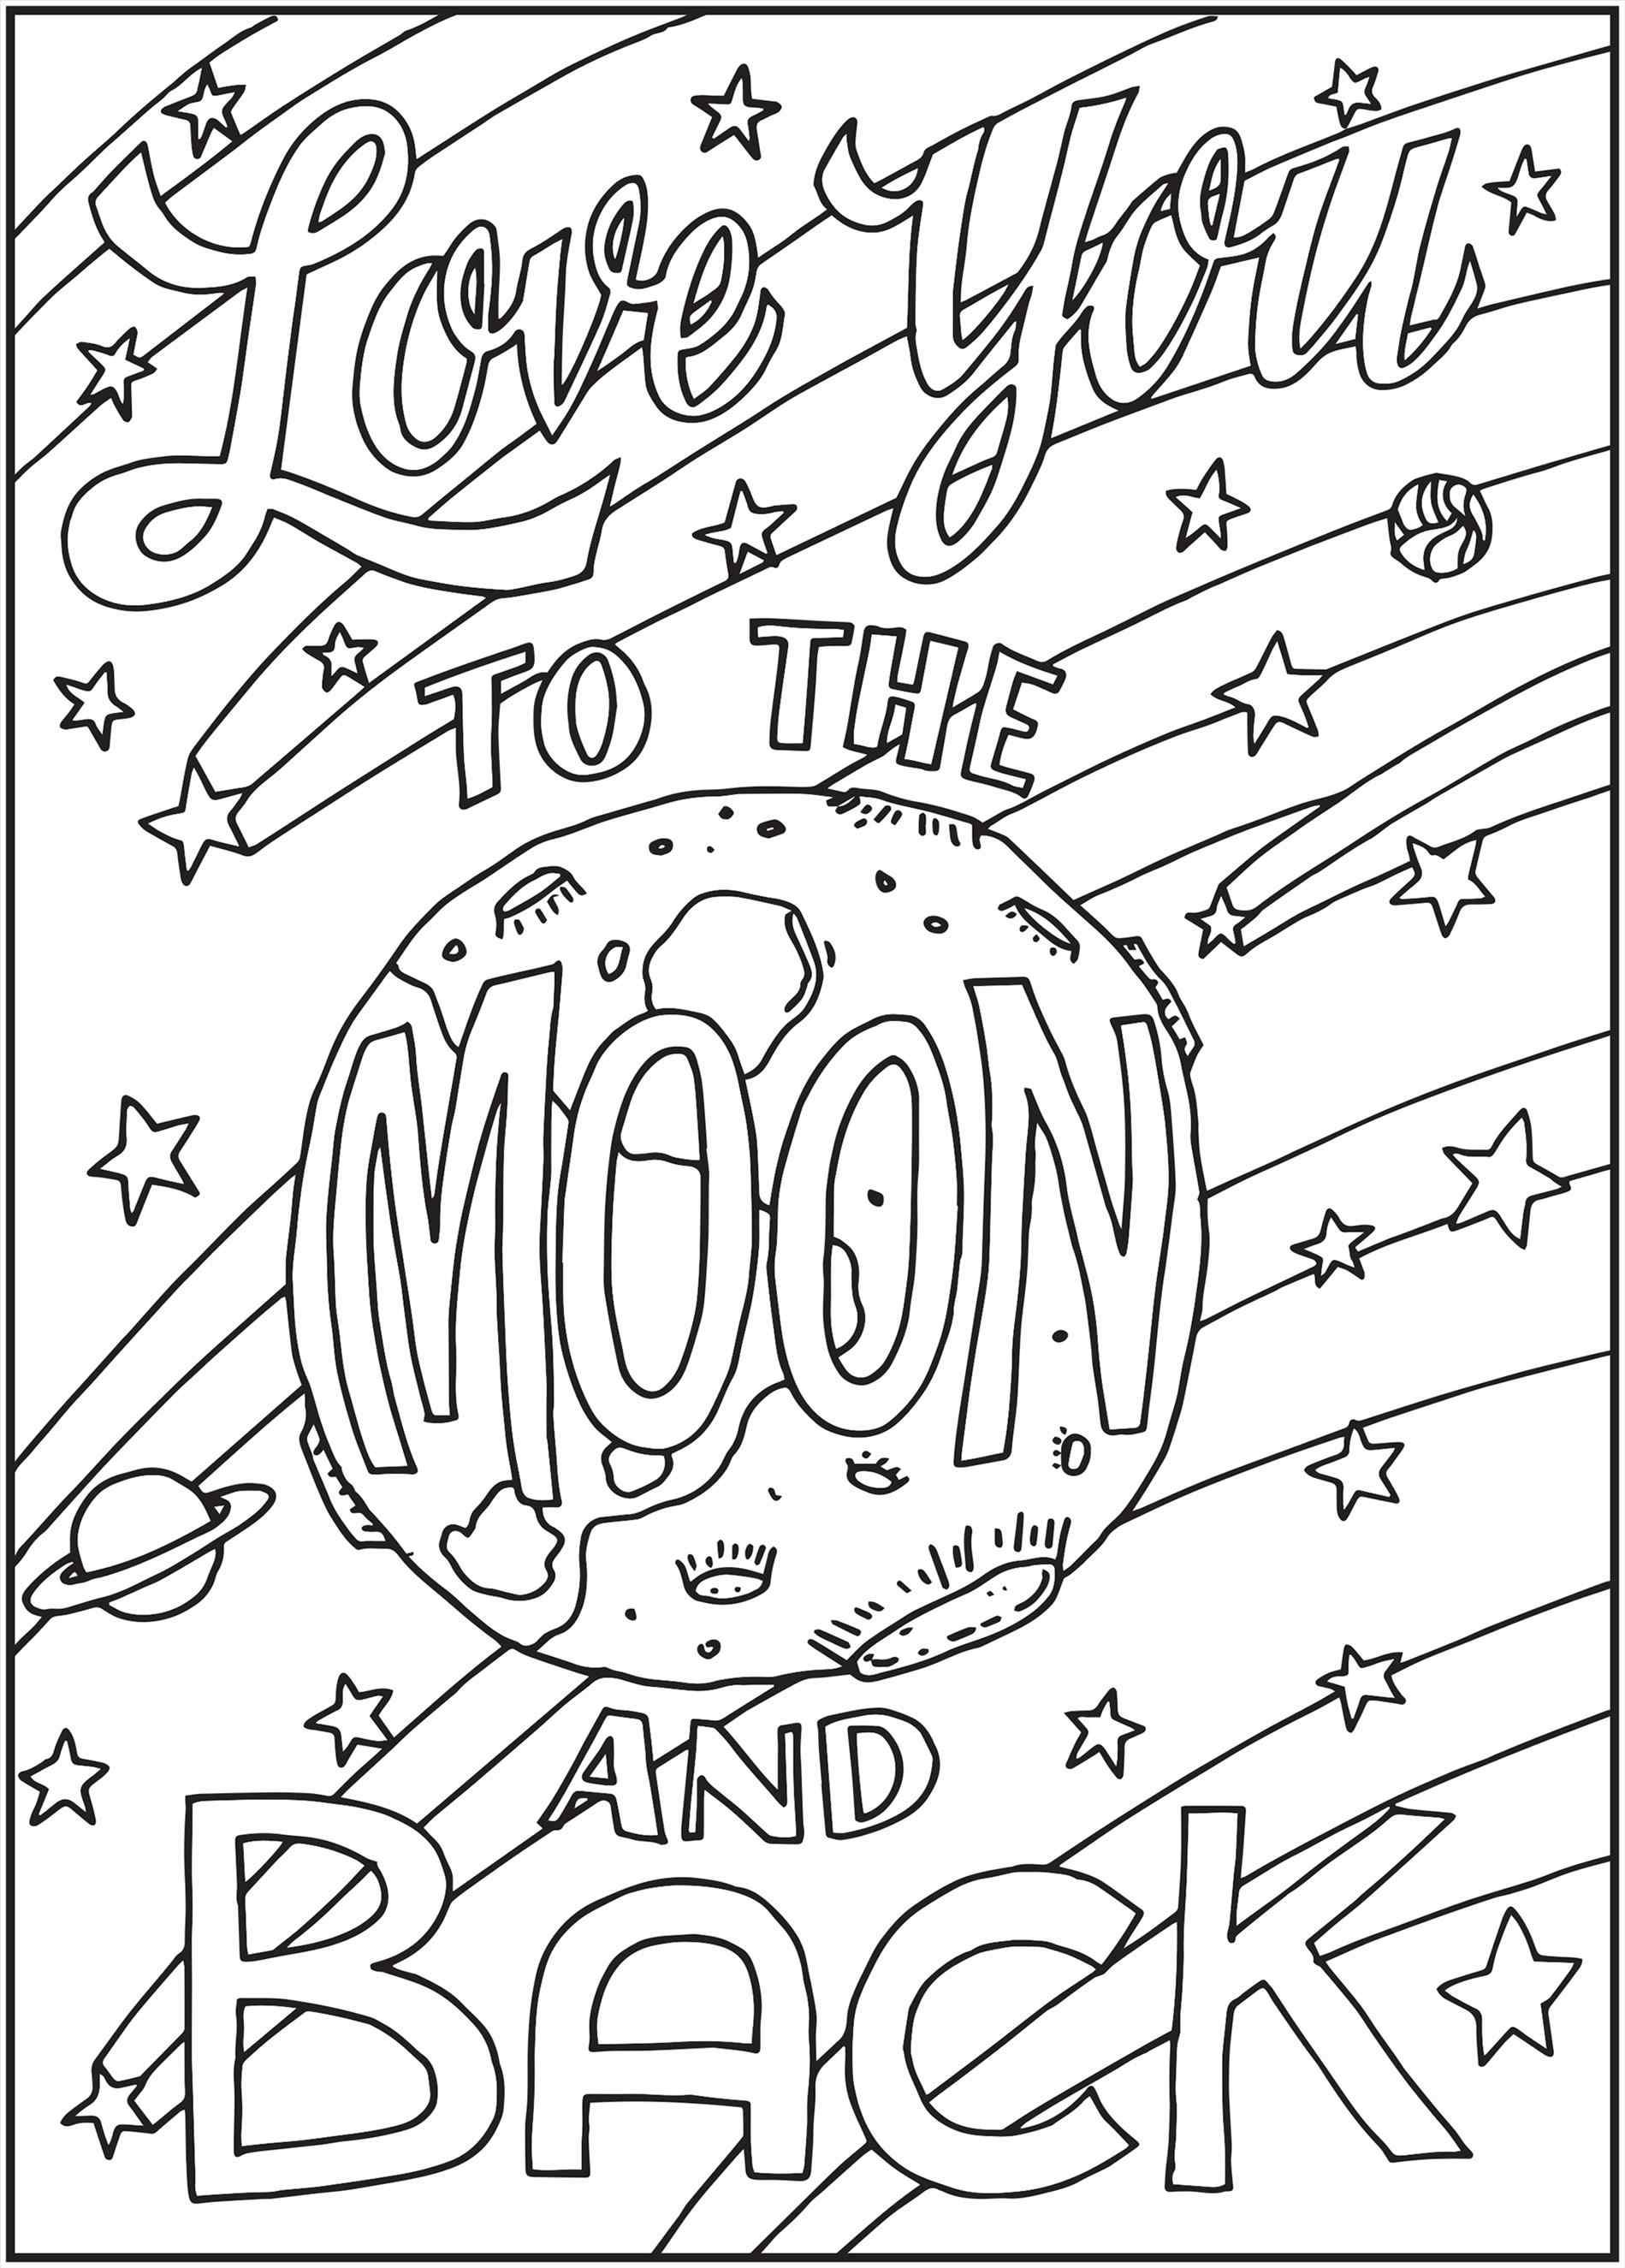 Pnterest Books Best I Love You To The Moon And Back Coloring Pages